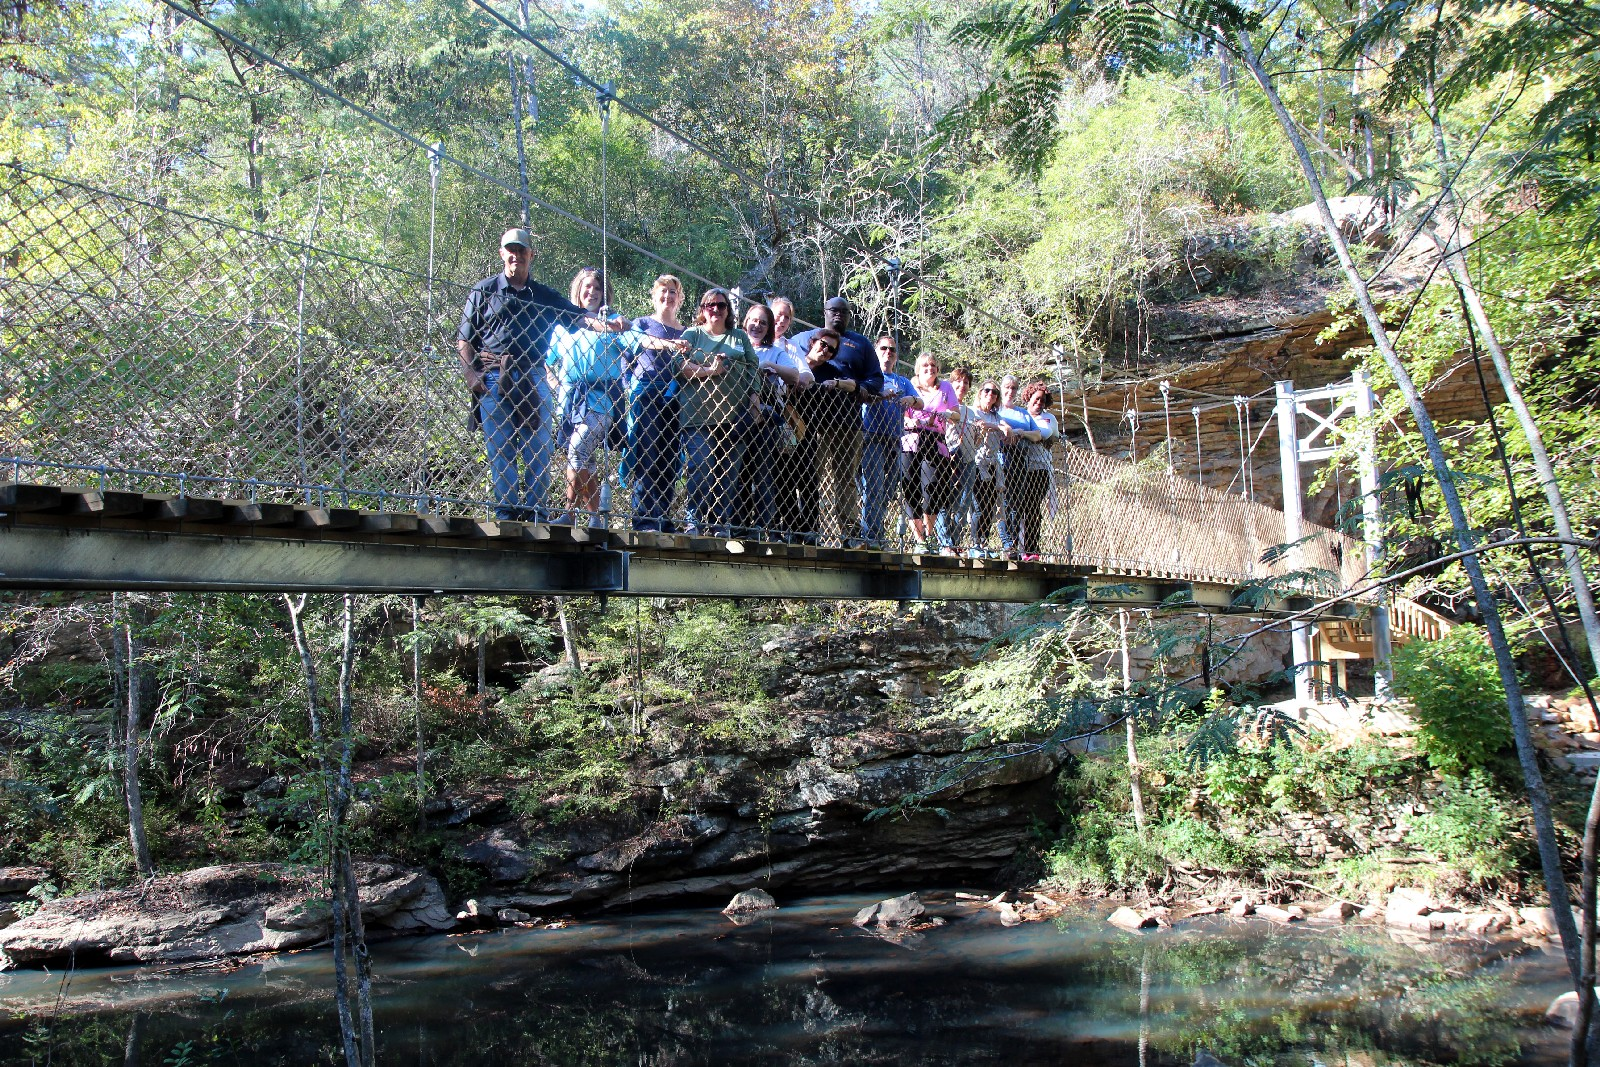 Conference attendees on the Suspension Bridge.